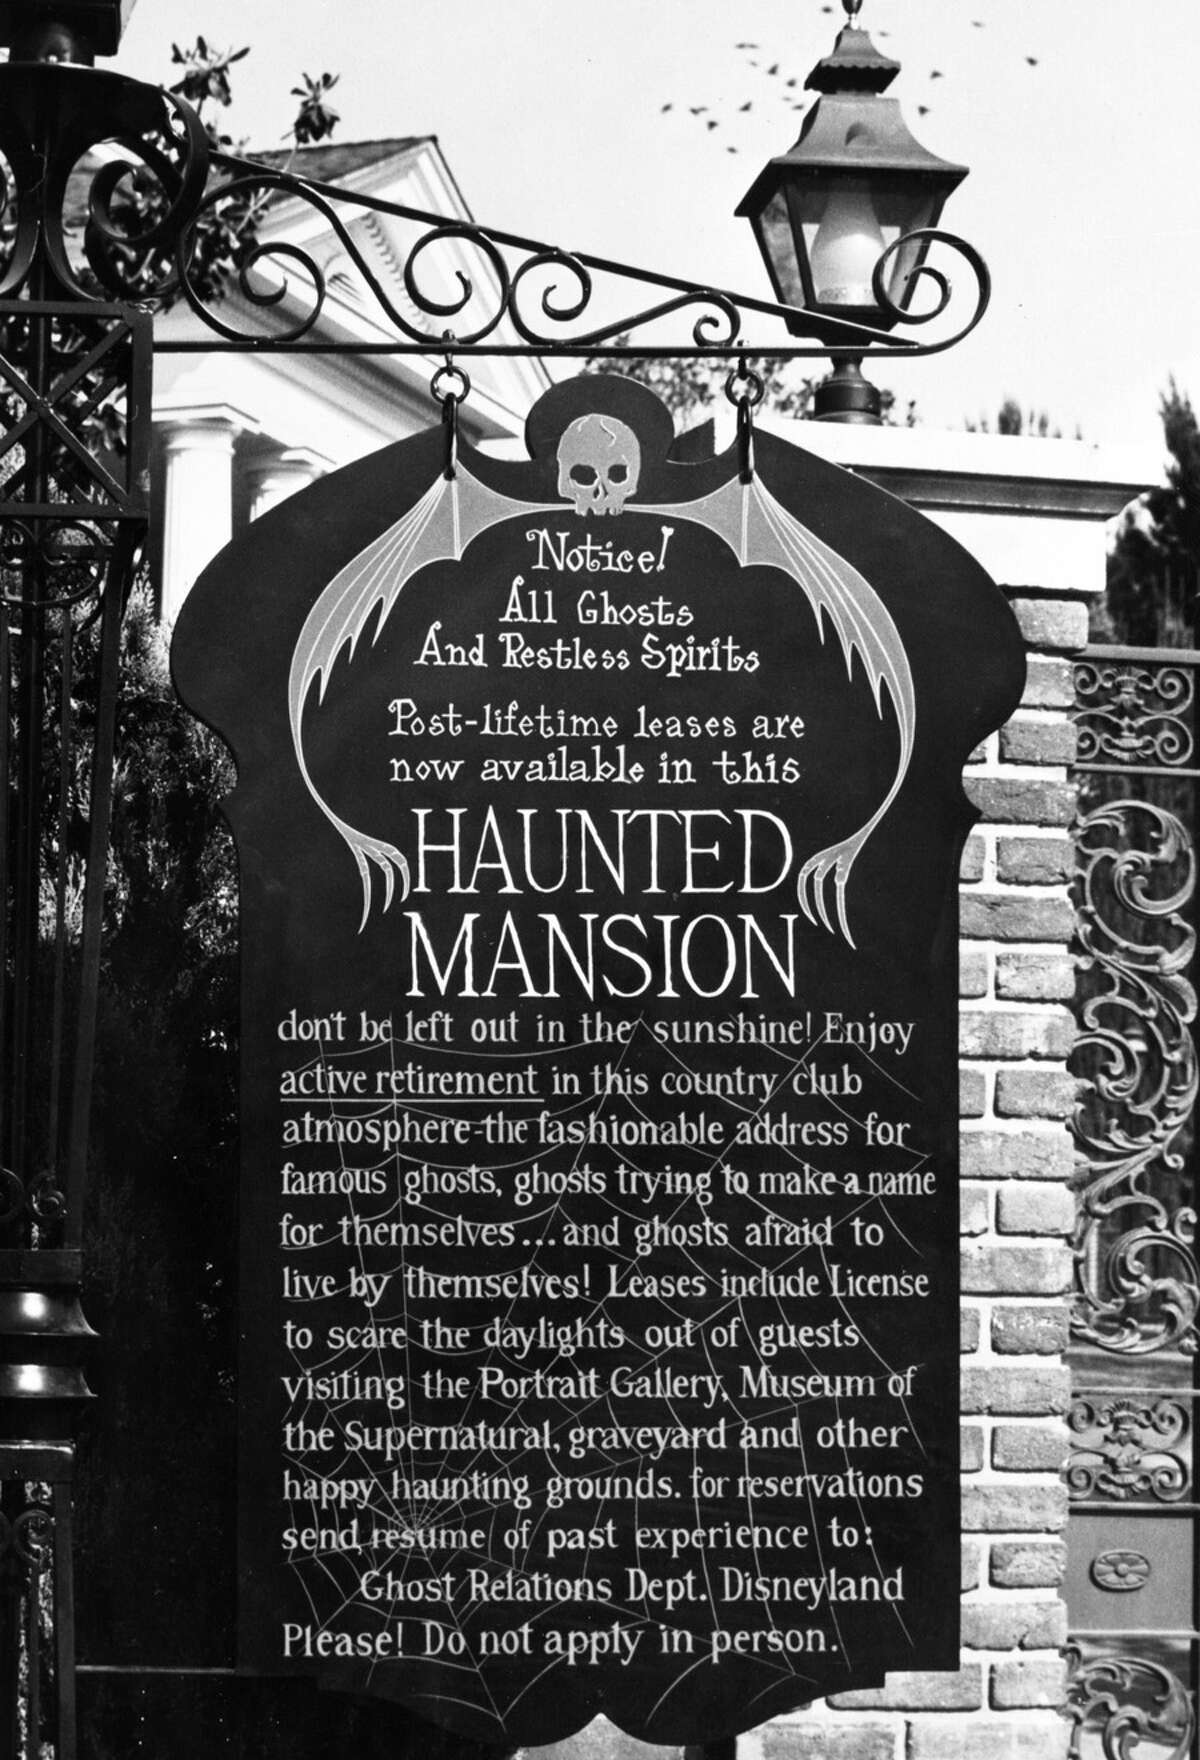 Fifty years ago, in 1969, before the Haunted Mansion opened to guests at Disneyland Park in Anaheim, Calif., a witty sign displayed outside of the attraction read,